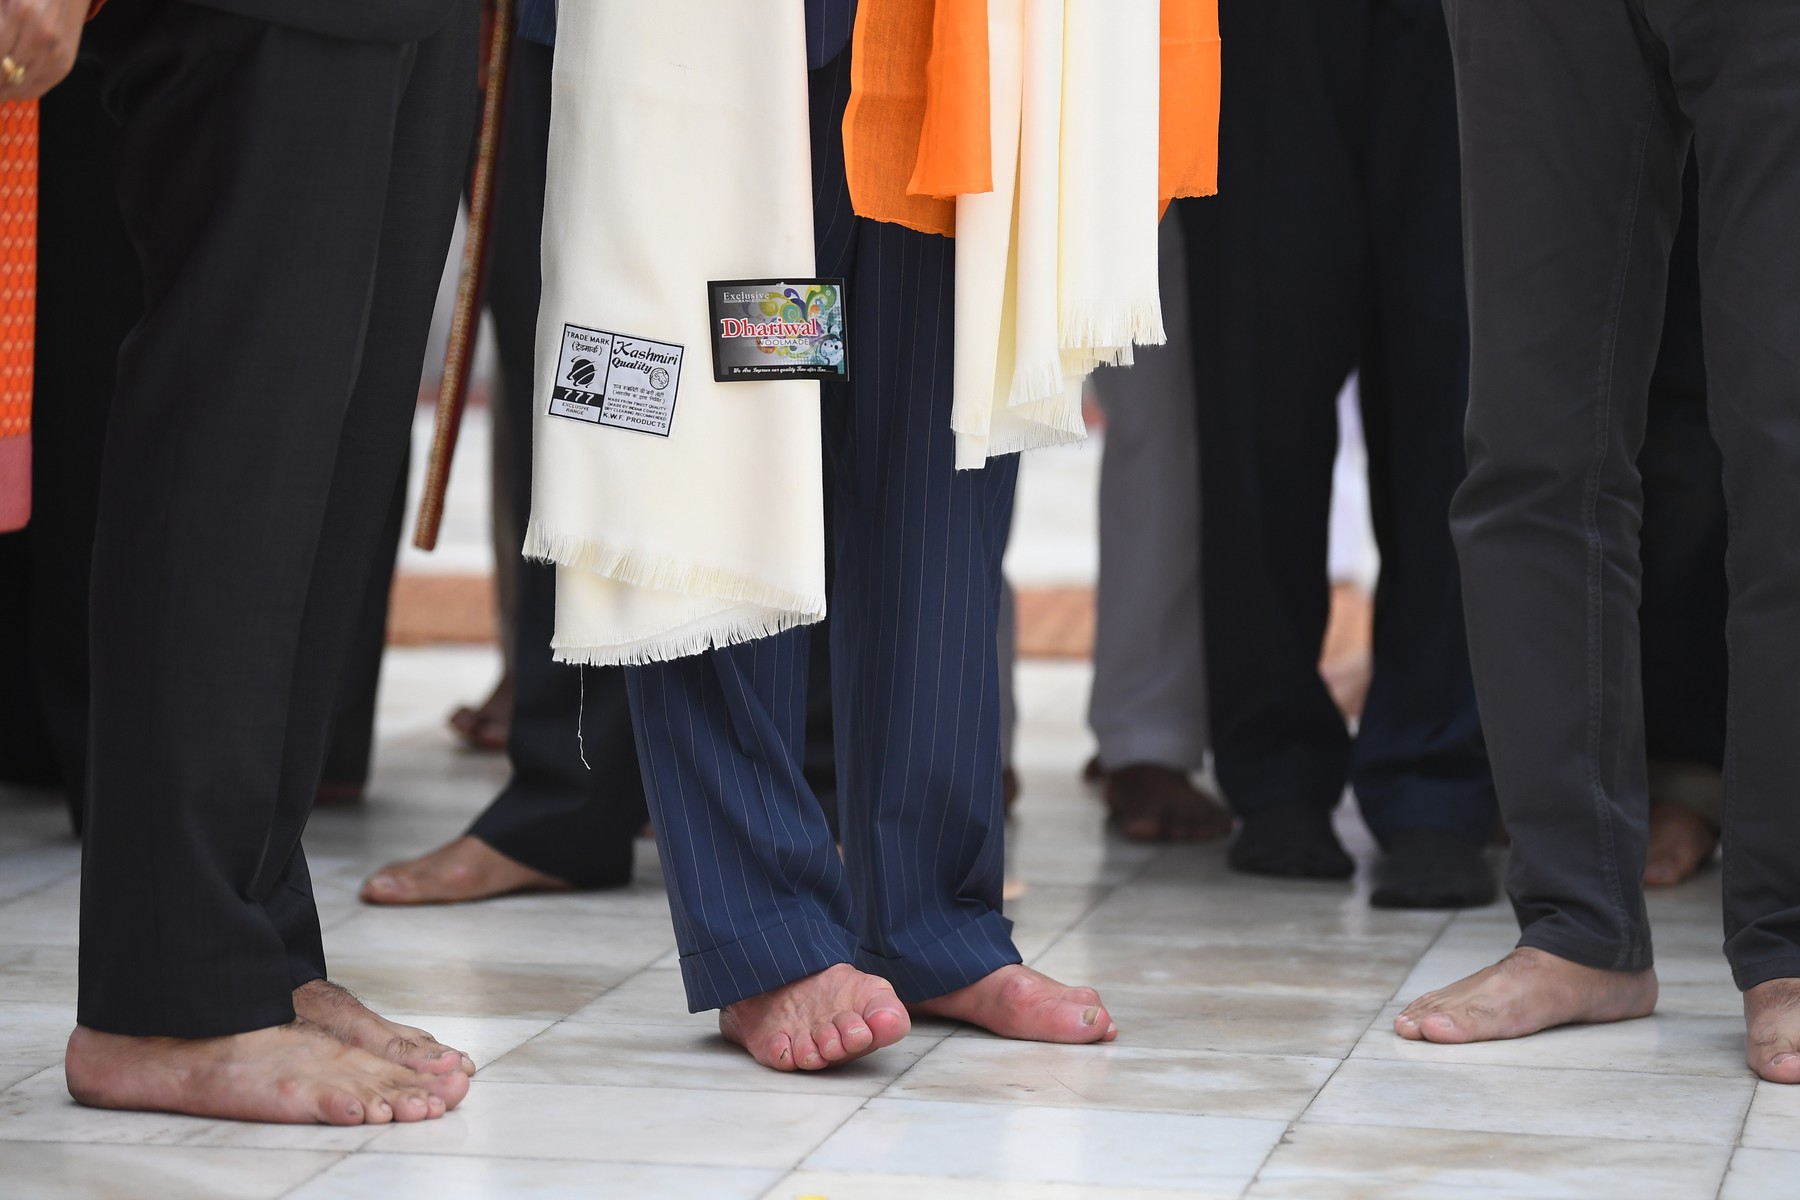 The Prince of Wales' bare feet during his visit to the Bangla Sahib Gurdwara Sikh Temple, New Delhi, to celebrate the 550th anniversary of the birth of Guru Nanak, the founder of Sikhism, on day one of the royal visit to India., Image: 482612457, License: Rights-managed, Restrictions: , Model Release: no, Credit line: Victoria Jones / PA Images / Profimedia